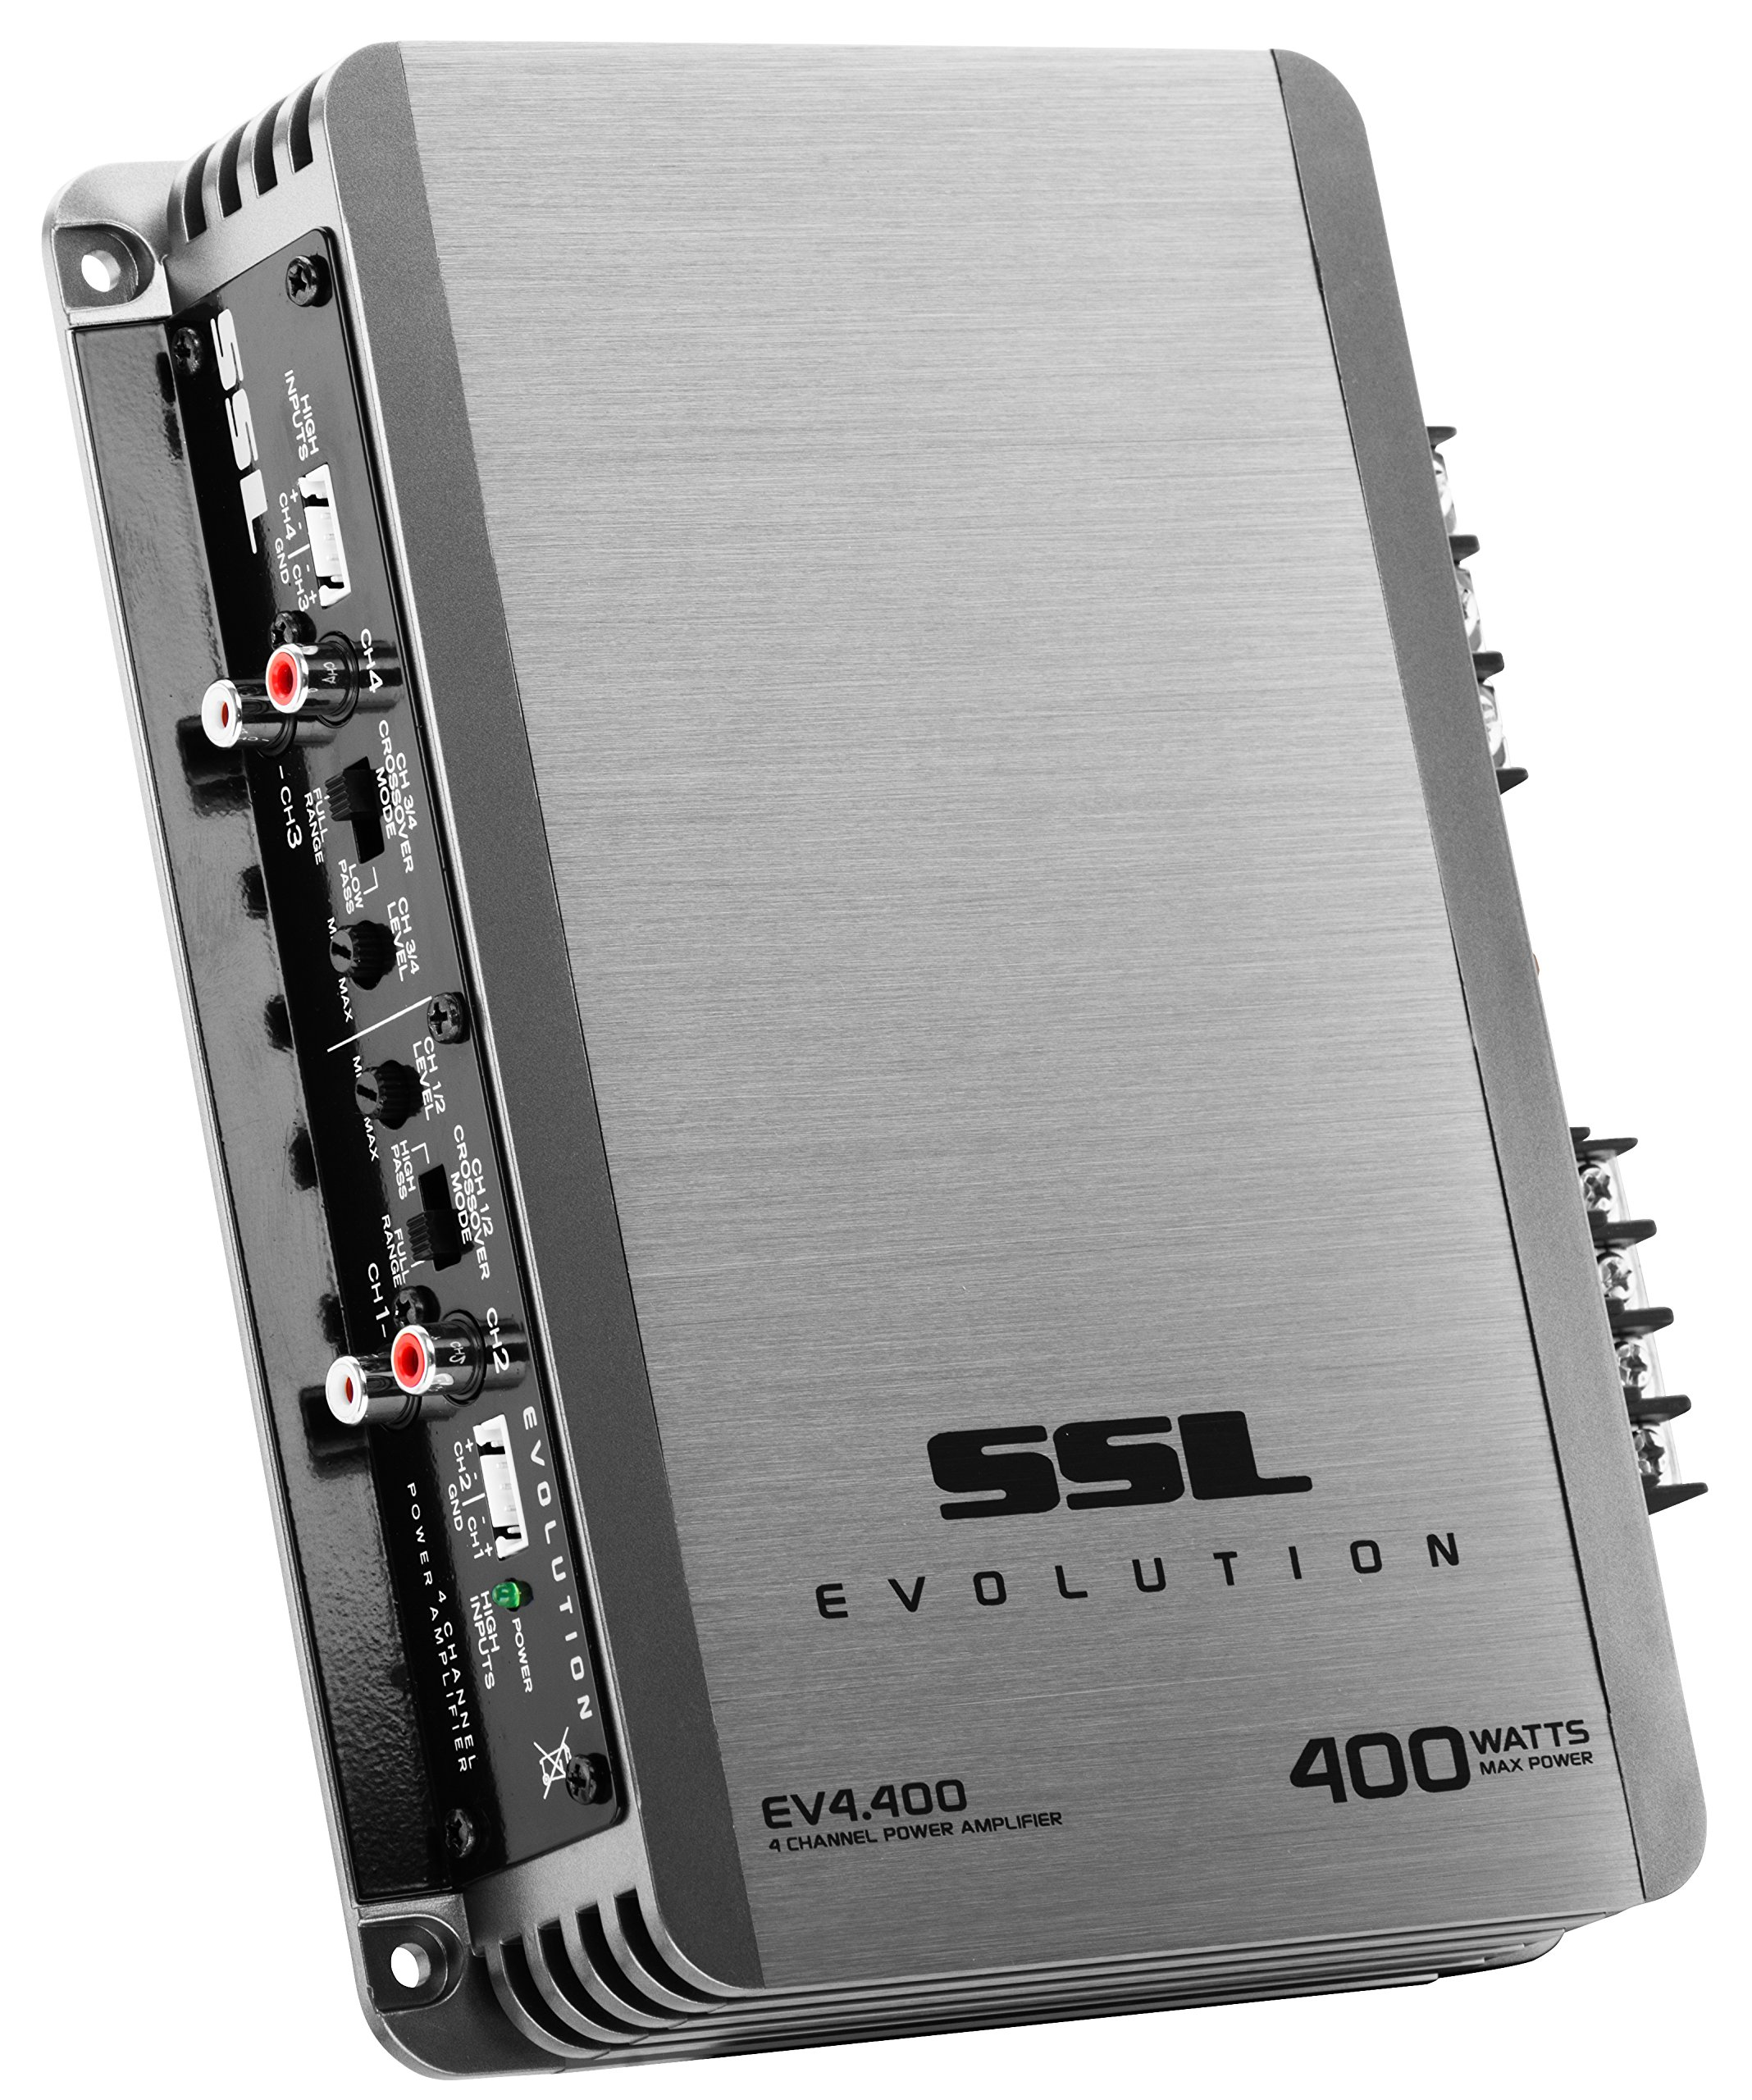 Sound Storm EV4.400 Evolution 400 Watt, 4 Channel, 2 to 8 Ohm Stable Class A/B, Full Range Car Amplifier